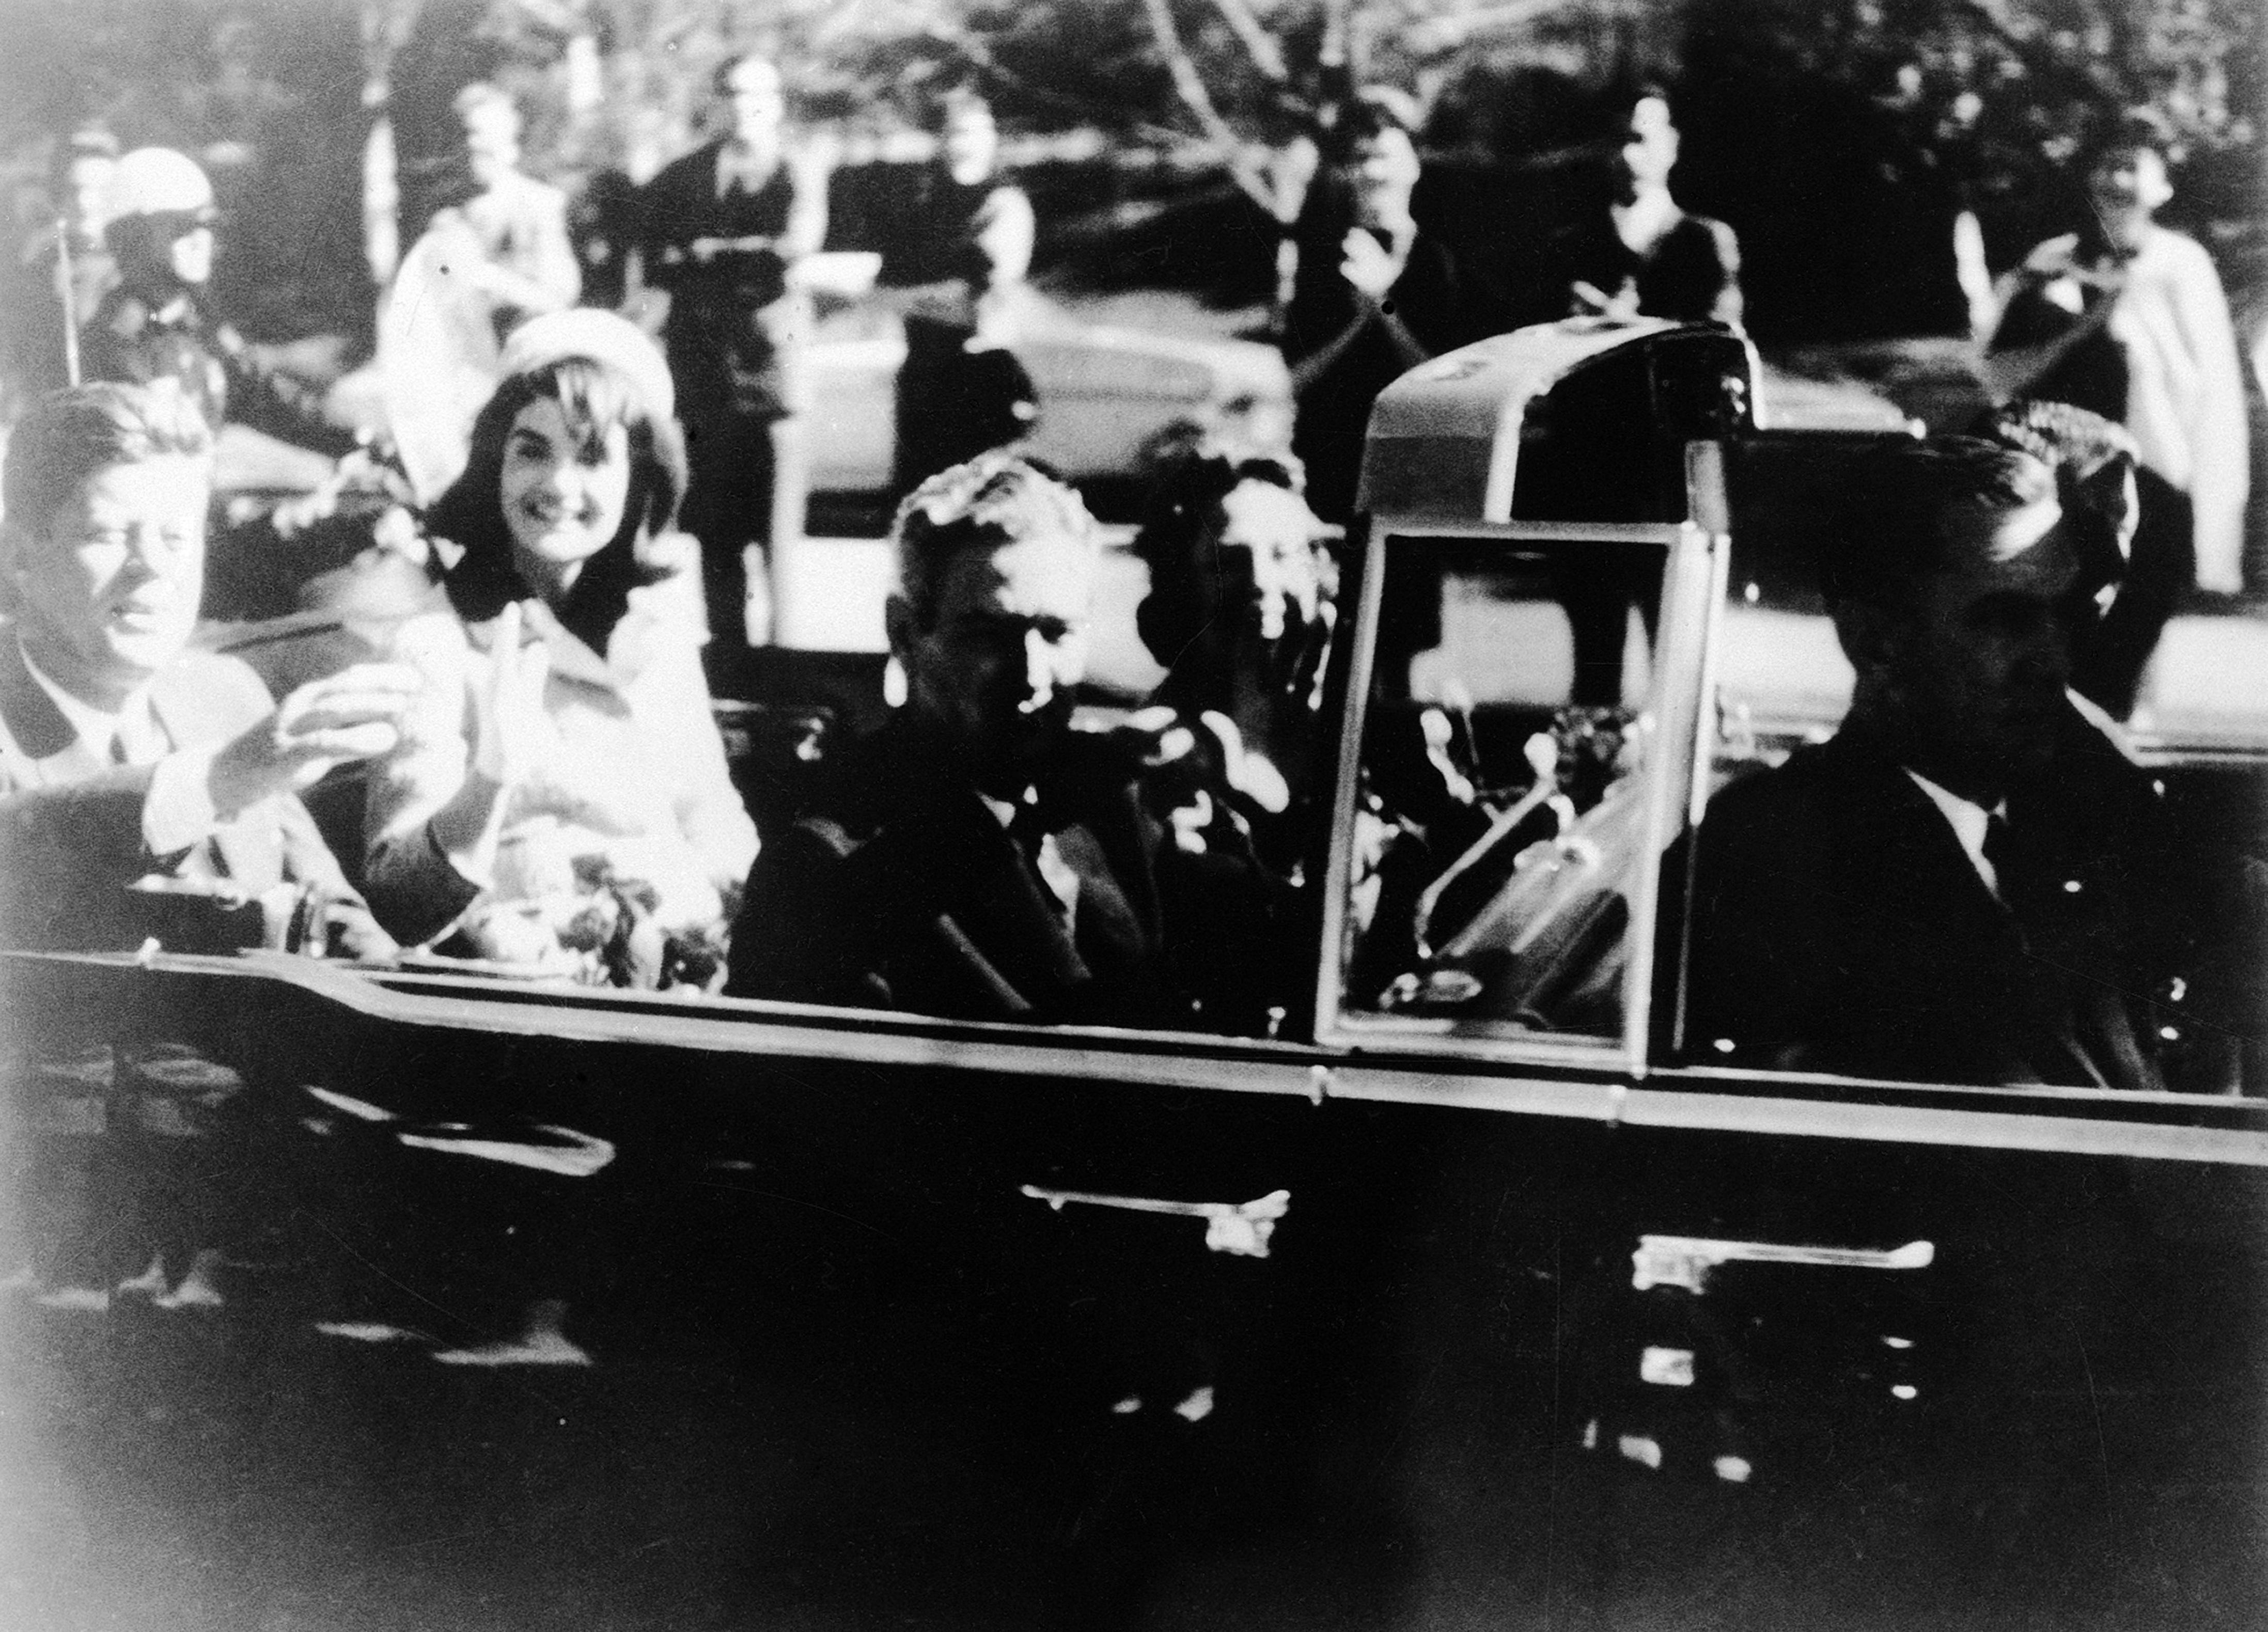 This image provided by the Warren commission, shows Warren Commission Exhibit No. 697, President John F. Kennedy at the extreme right on rear seat of his limousine during Dallas, motorcade on Nov. 22, 1963. (Warren Commission via AP)<p></p>